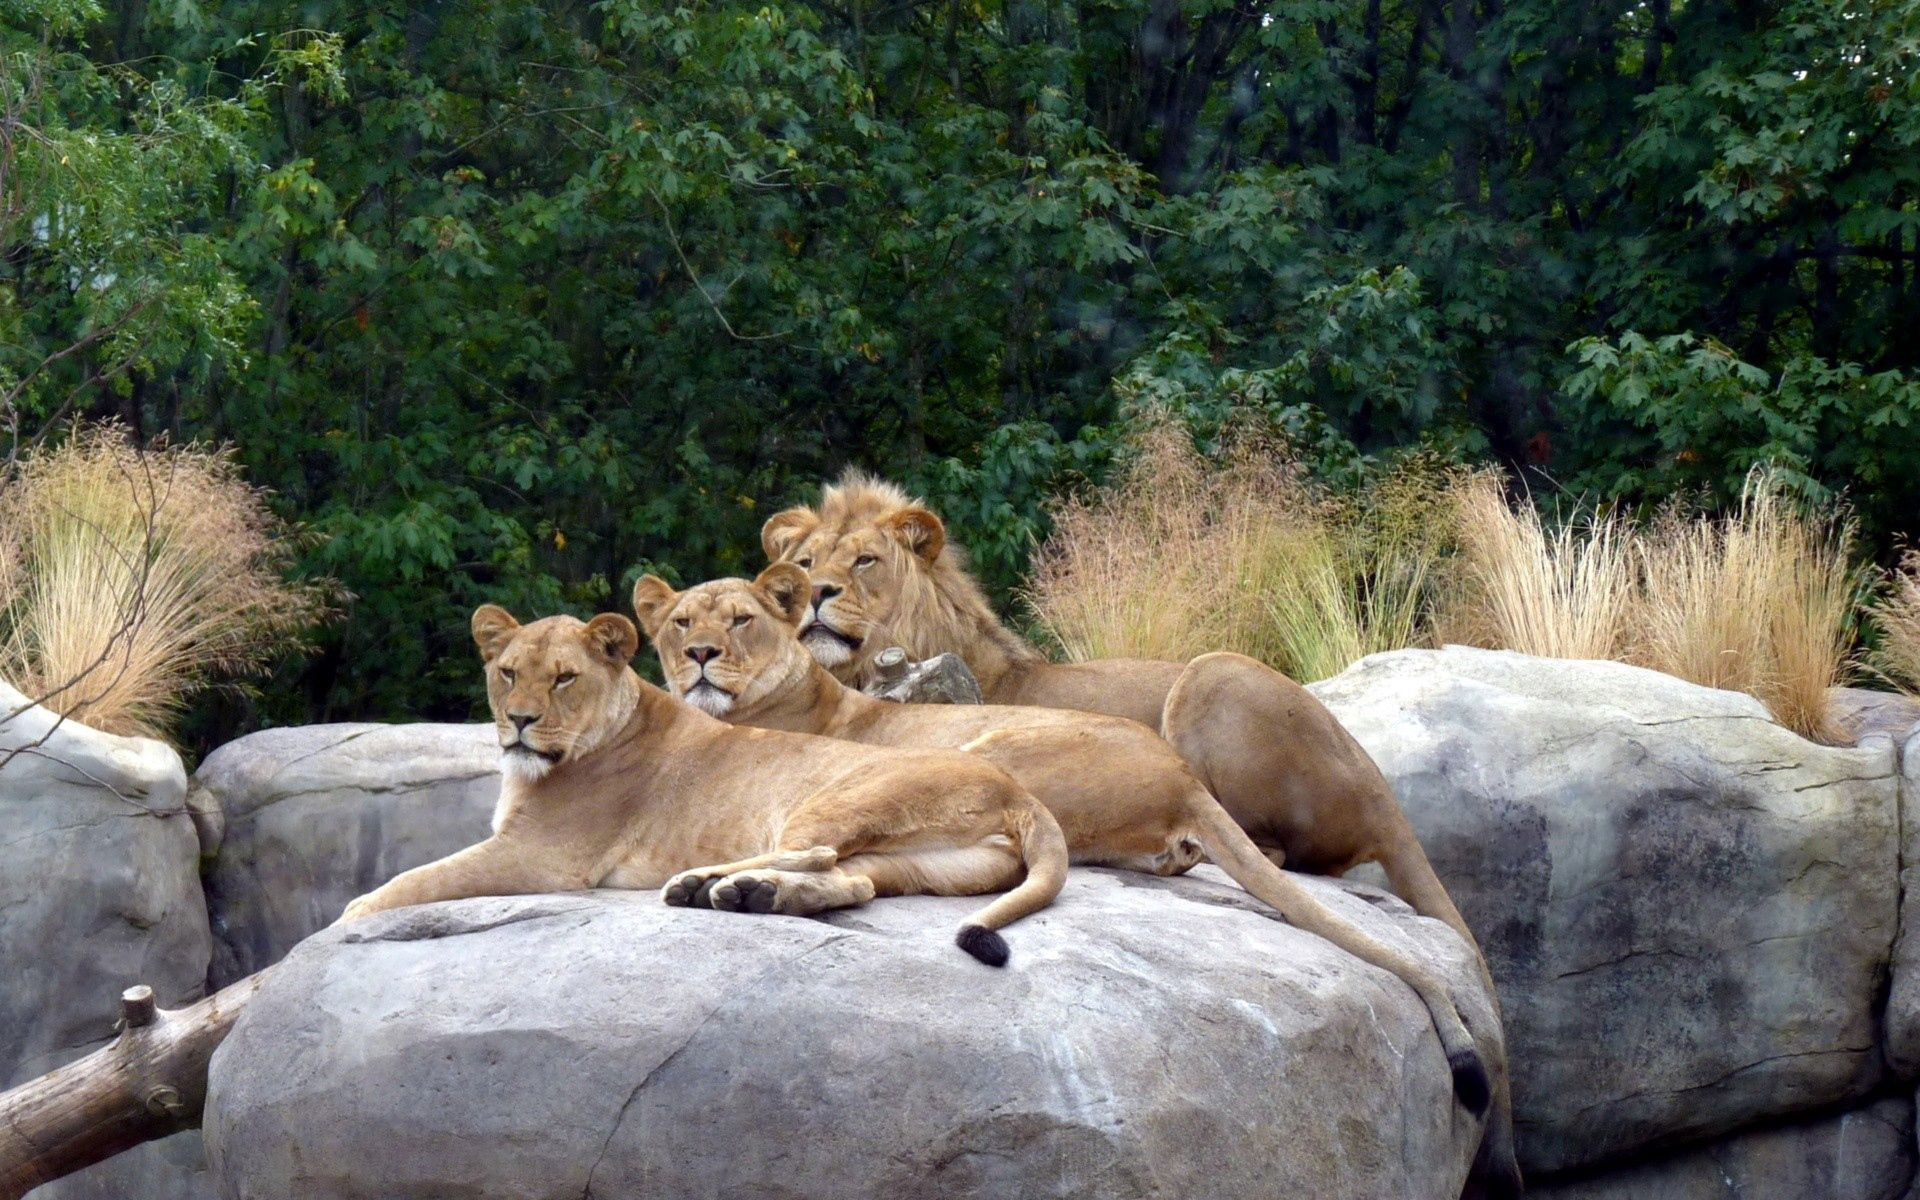 140880 download wallpaper Animals, To Lie Down, Lie, Stones, Grass, Predators, Lions screensavers and pictures for free